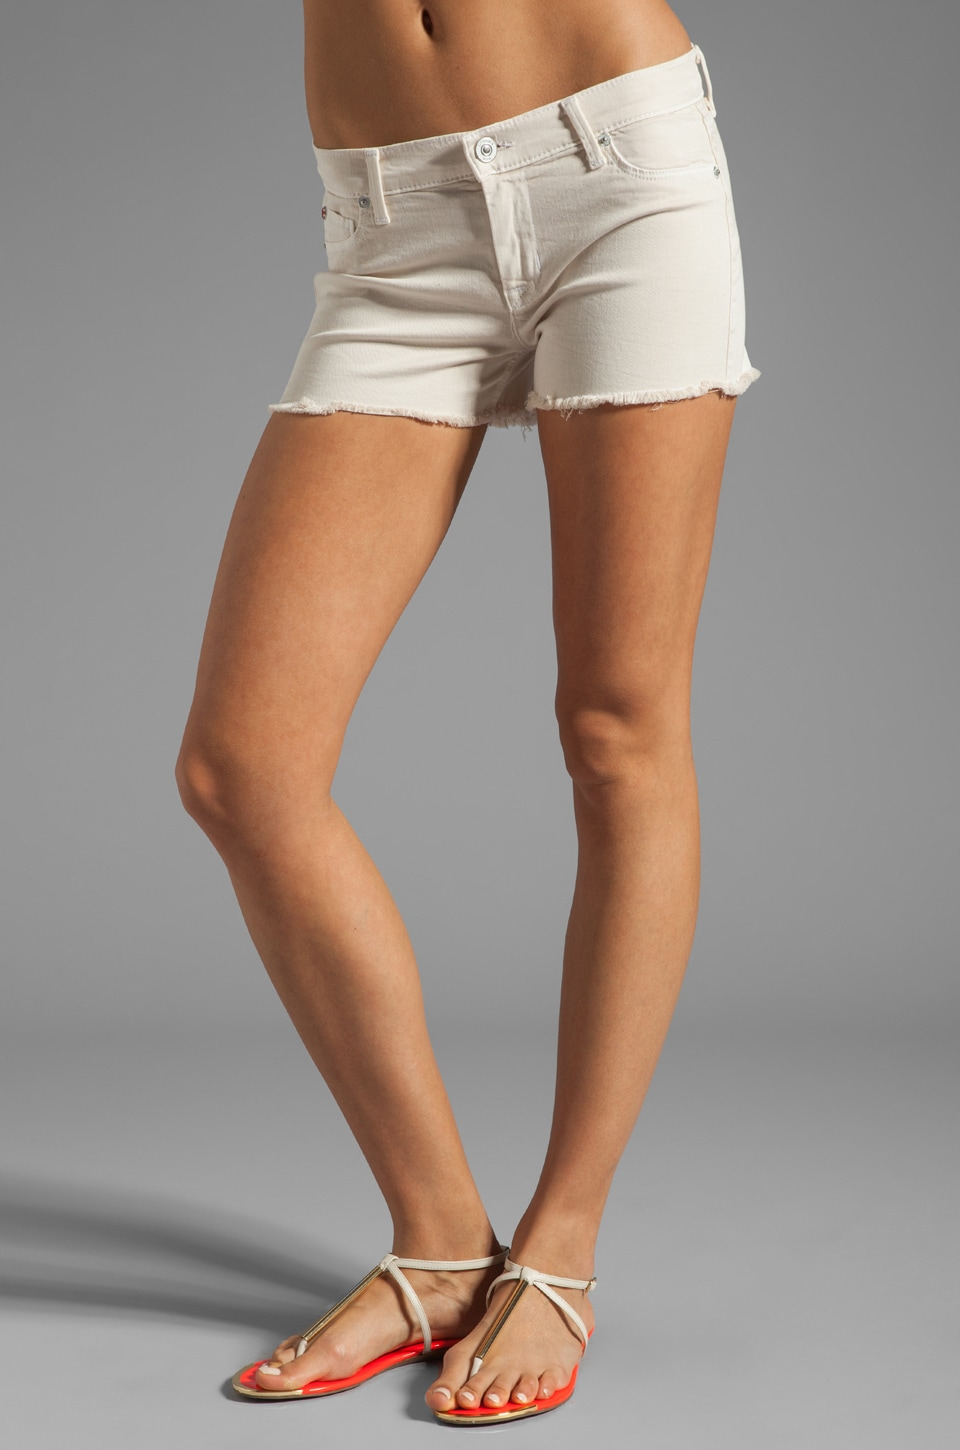 Hudson Jeans Amber Raw Edge Short in Shell